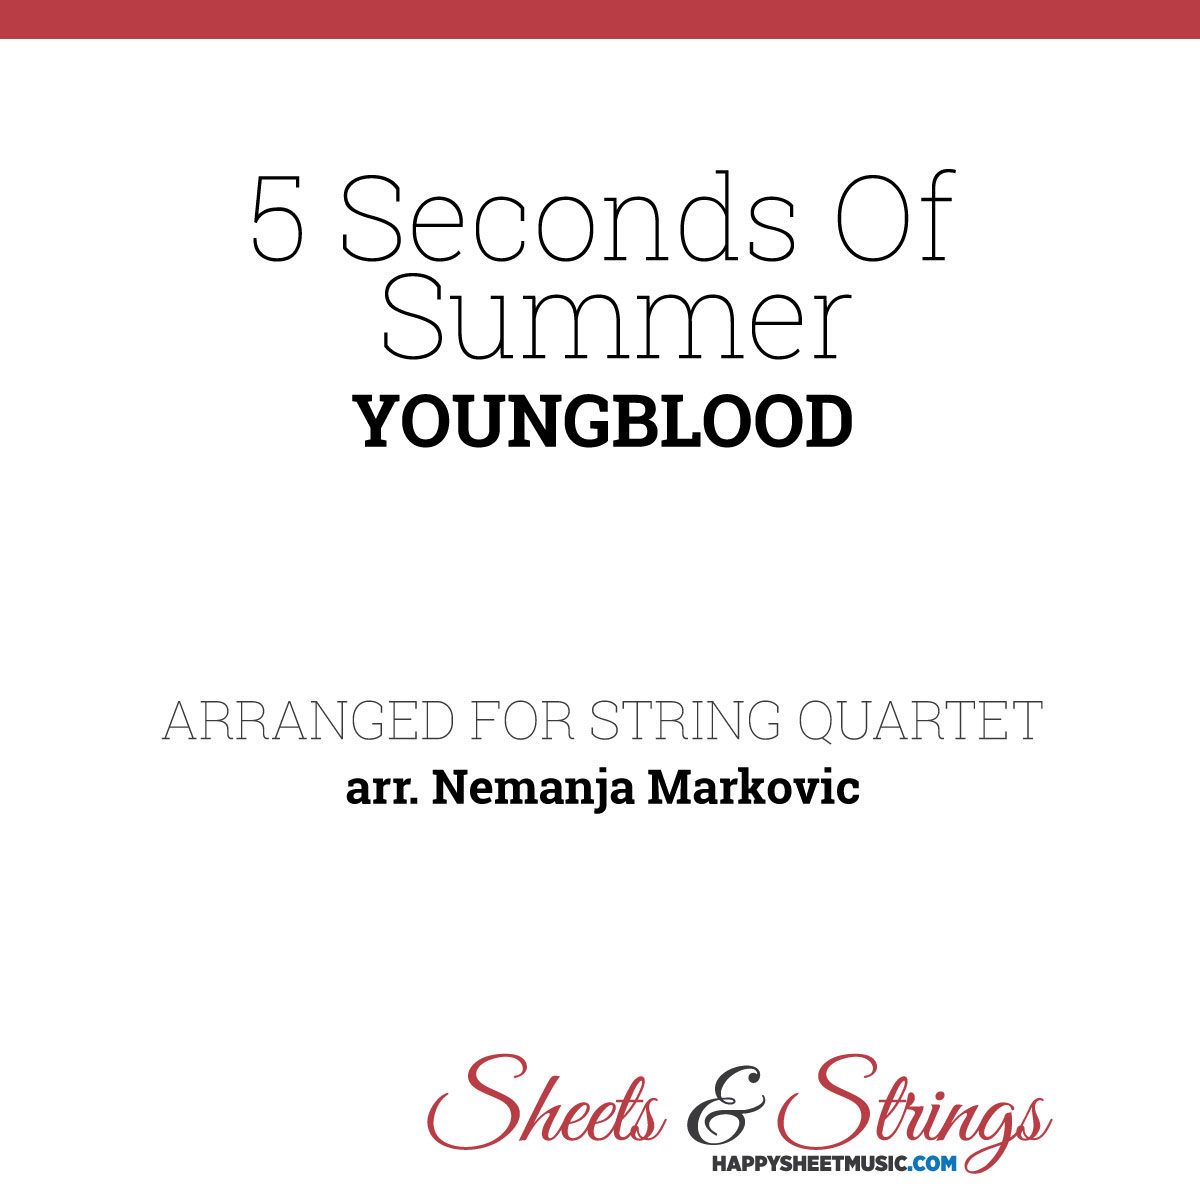 5 Seconds Of Summer - Youngblood - Sheet Music for String Quartet - Music Arrangement for String Quartet